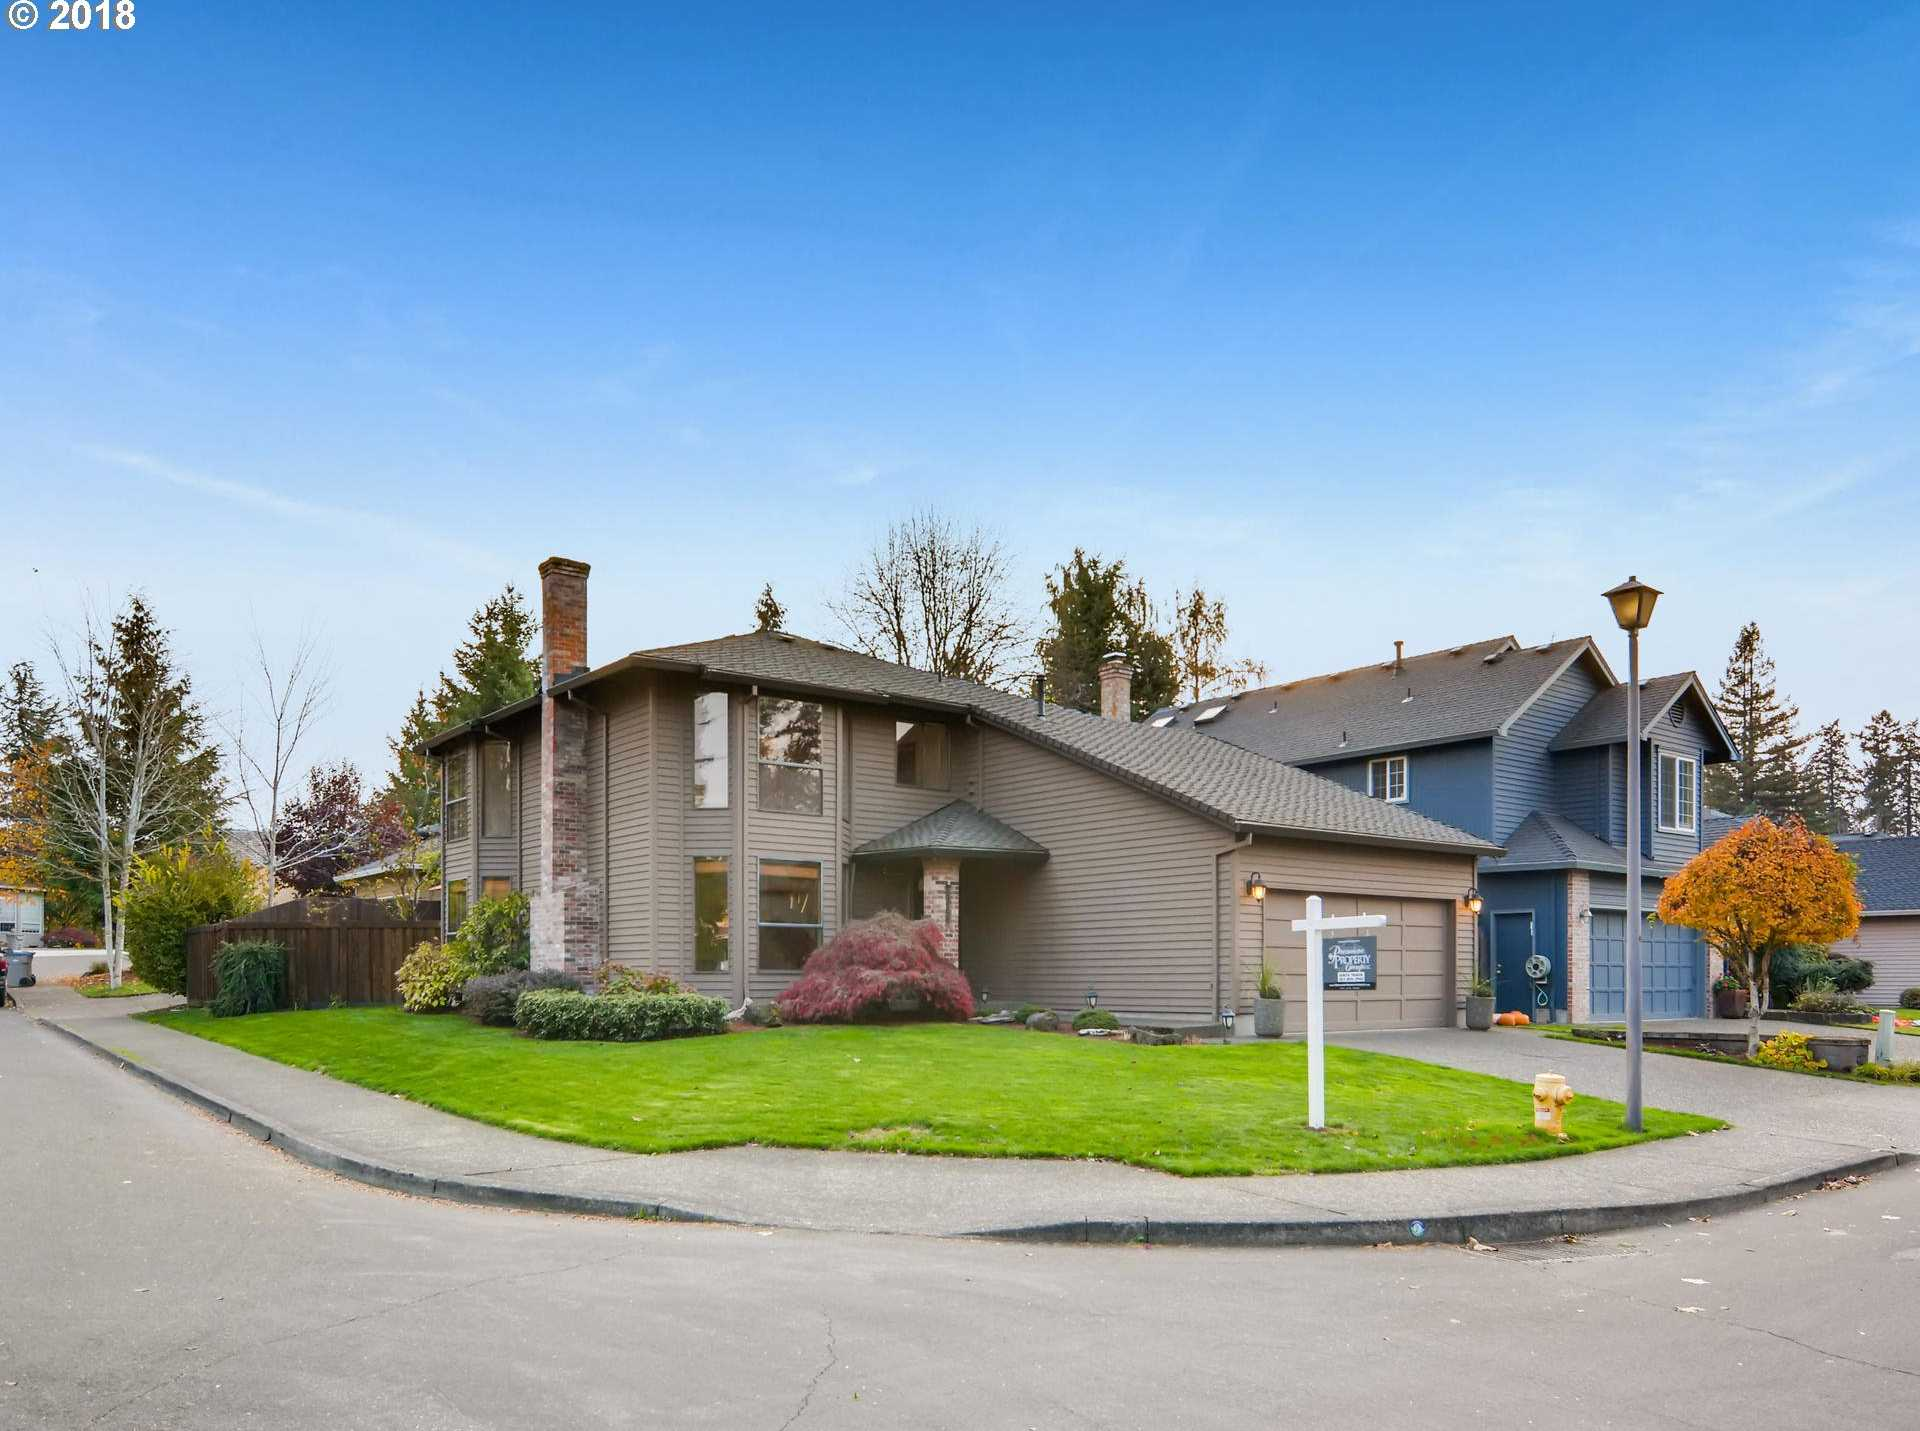 $445,000 - 4Br/3Ba -  for Sale in Cook Park, Tigard